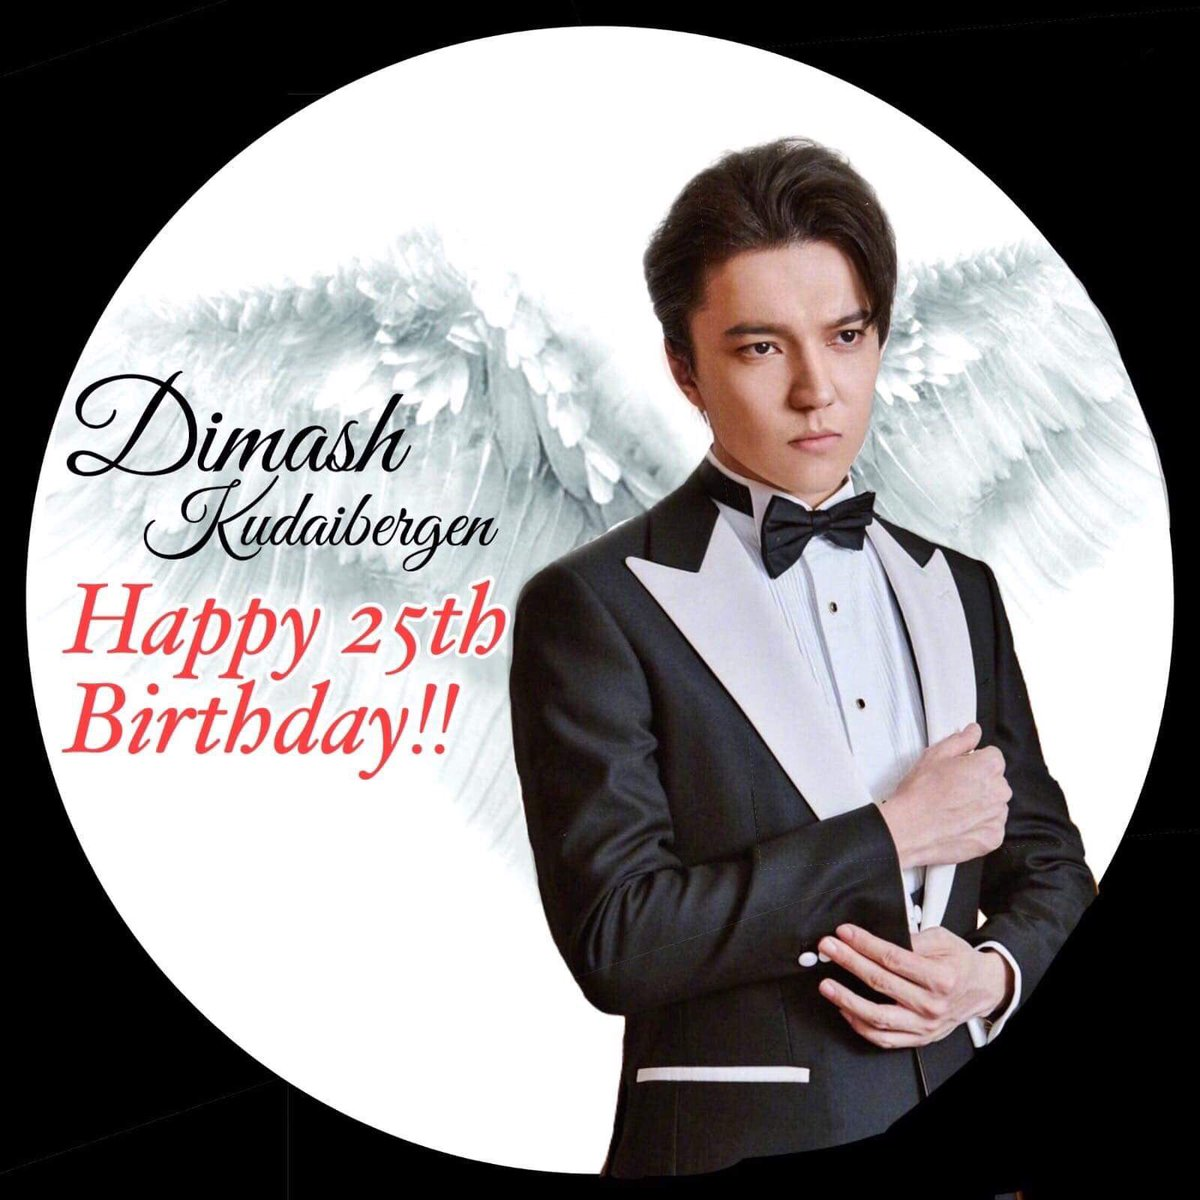 Celebration Time! For Dimash&#39;s 25th Birthday on Friday 5/24-Dears please tweet BD wishes ALL Day beginning at 00:01 Nursultan time  (12:01pm PST 2:01pm CST, 1:01pm EST Thursday 5/23 NOTE the date), Using the following #:  #DimashHappyBirthday #DimashBestSinger  @dimash_official<br>http://pic.twitter.com/3UrkuXbeHi